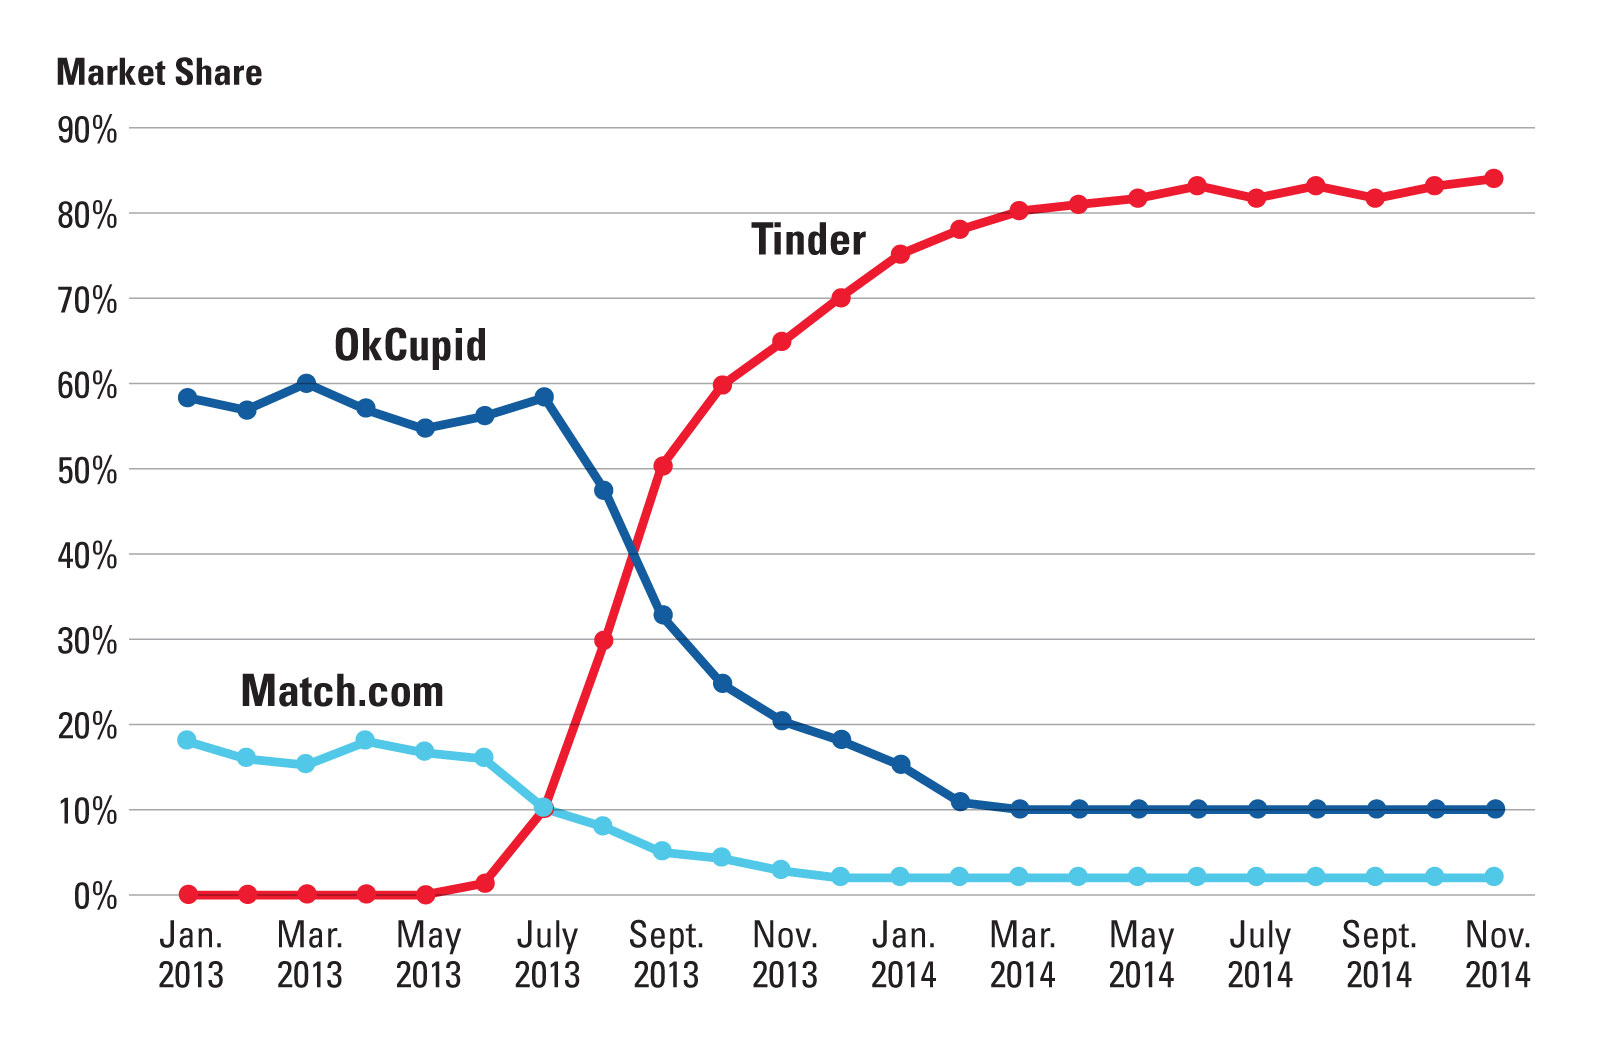 Market Share of Mobile Dating Apps in the United States